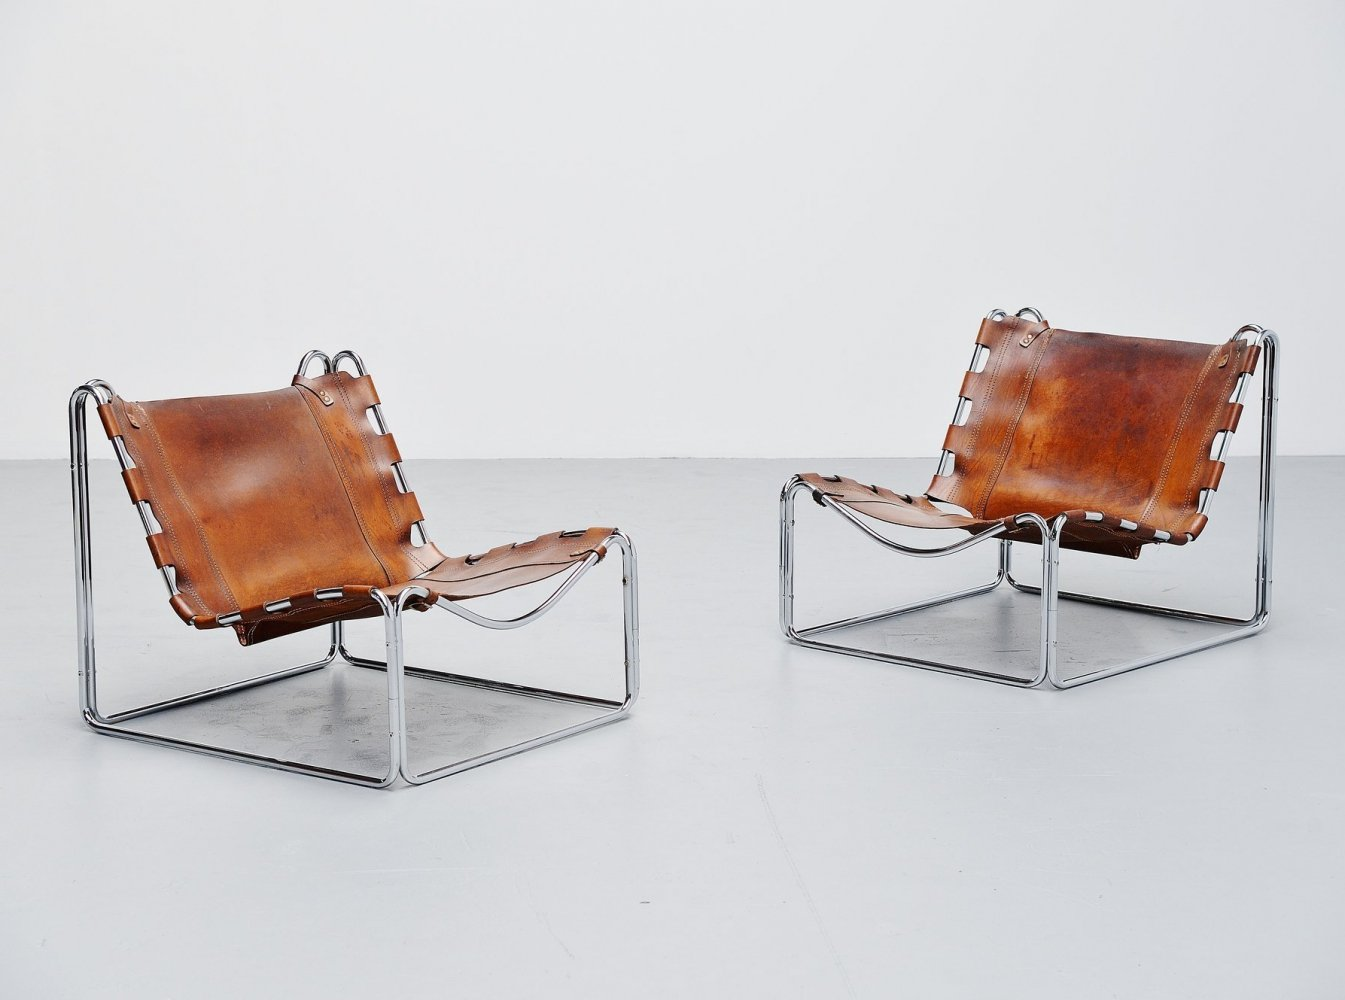 Pascal Mourgue Fabio lounge chairs by Steiner, 1970s